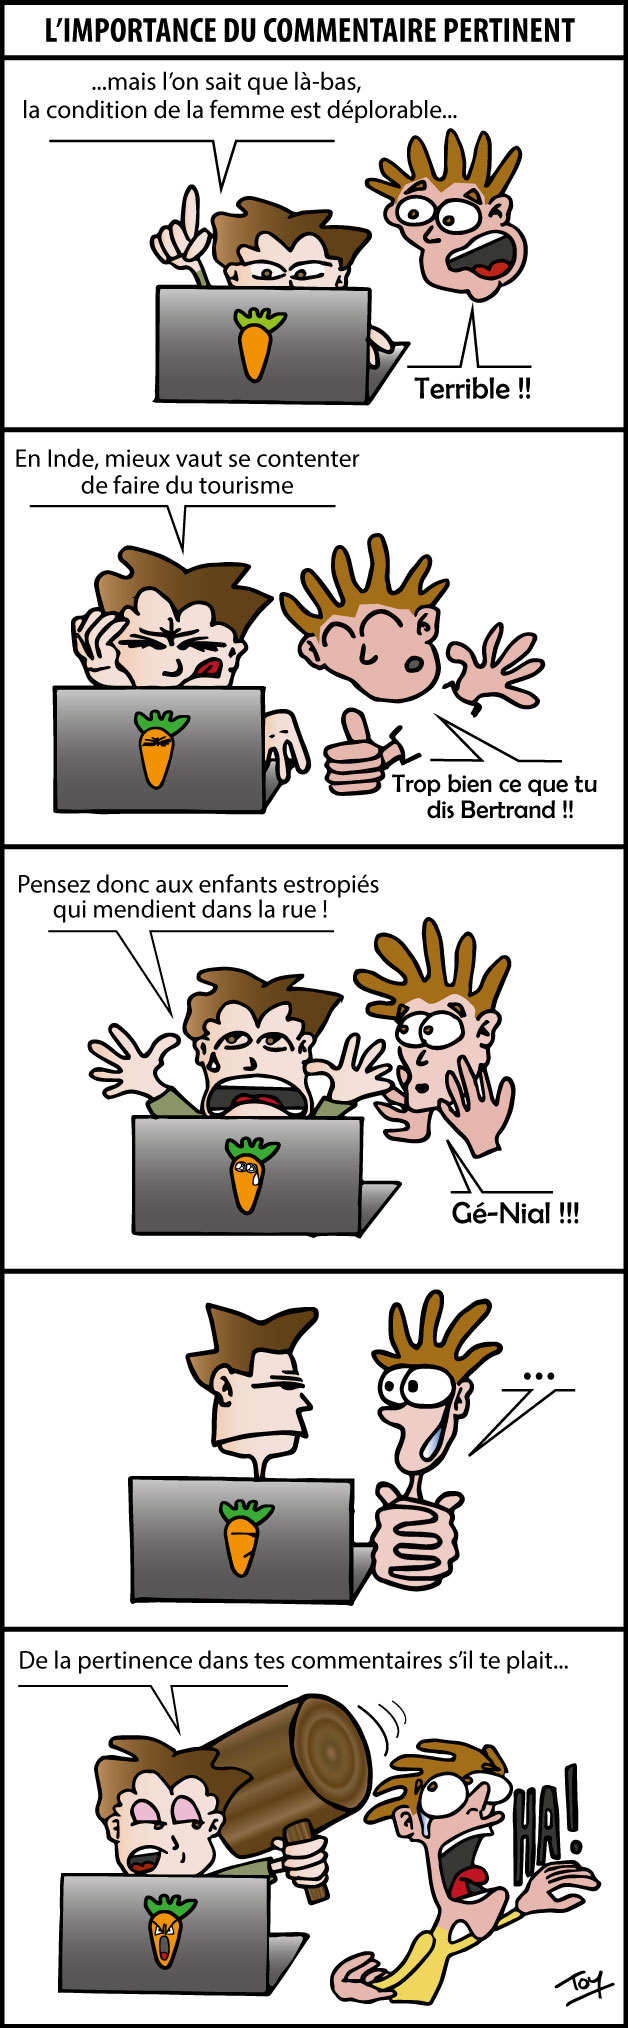 Commentaire Pertinent